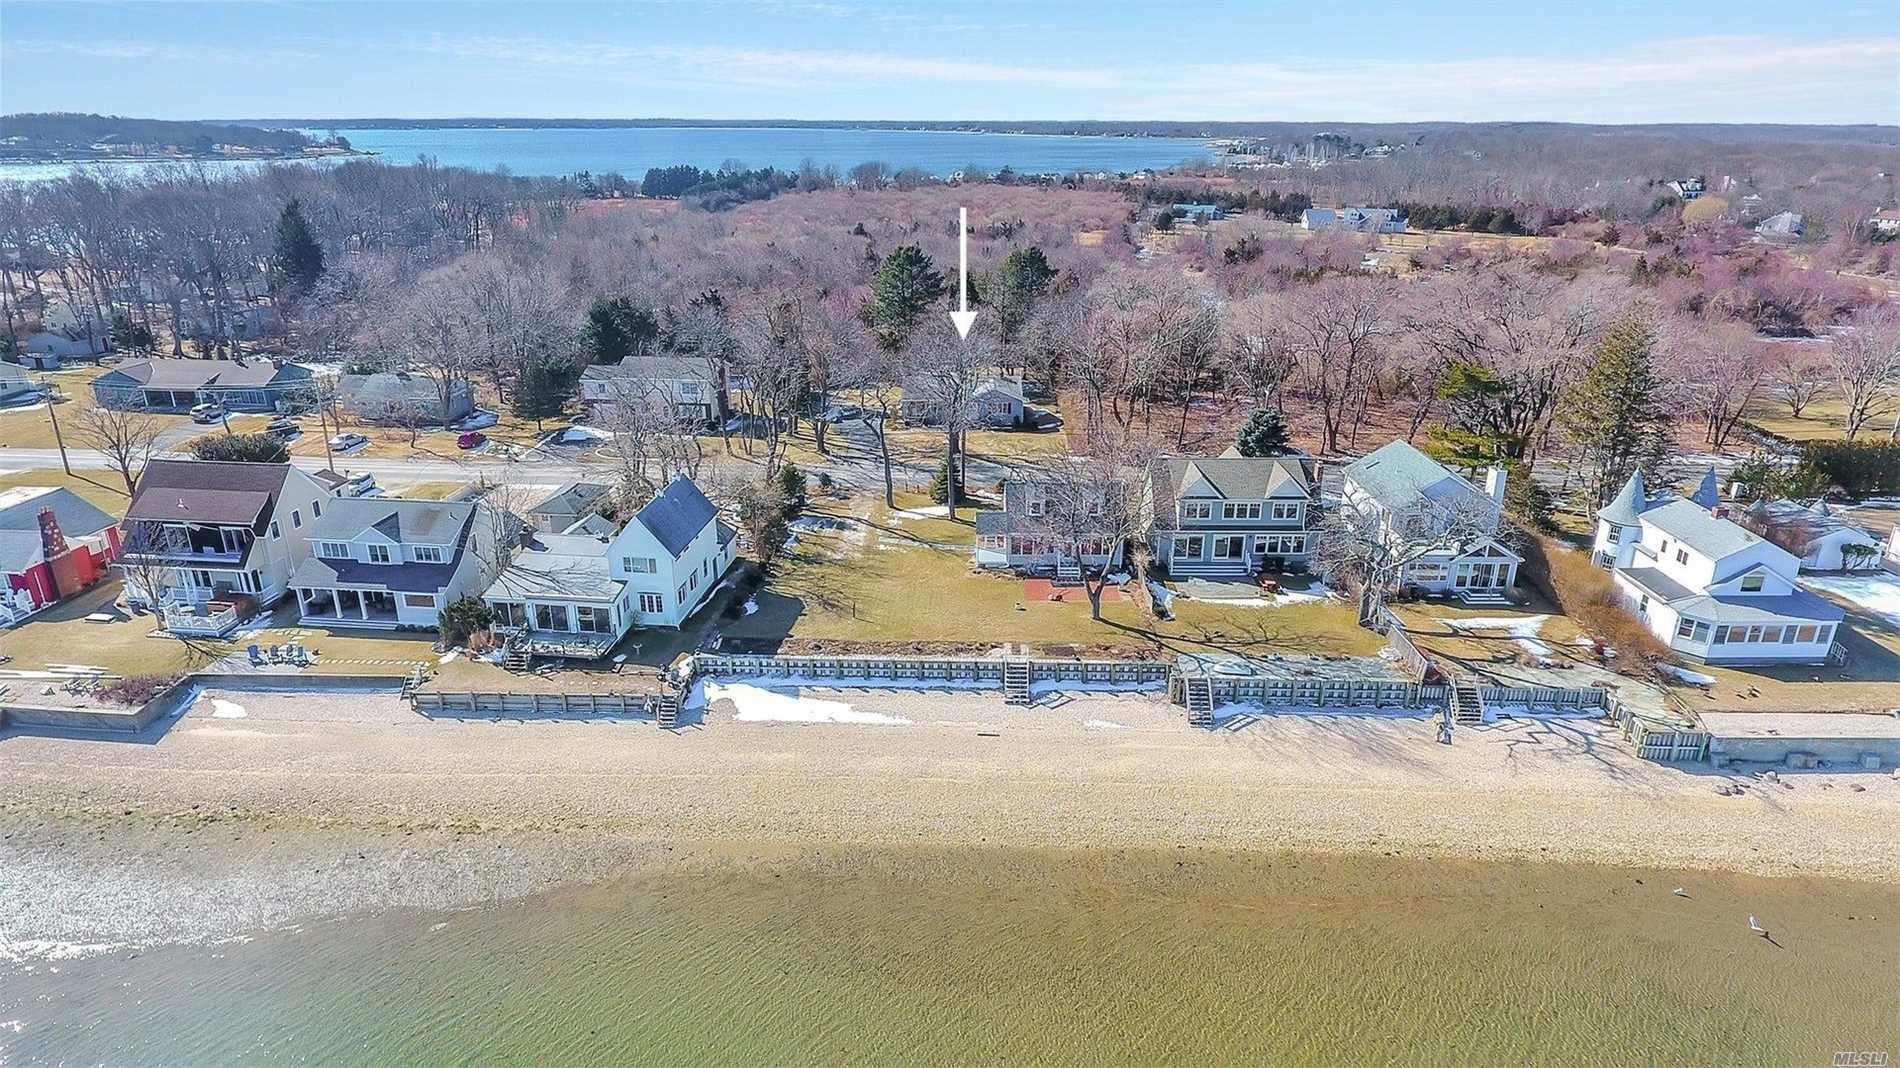 Charming Two Bedroom, Two Bath Waterview Cottage With Unobstructed Views Of Pipes Cove To Shelter Island. Easy Access To Sandy Bay Beach And Greenport Village. All Oak Flooring, Cac, Outdoor Shower, Large Rear Deck Overlooking 1/3 Acre Property. The Perfect North Fork Getaway.